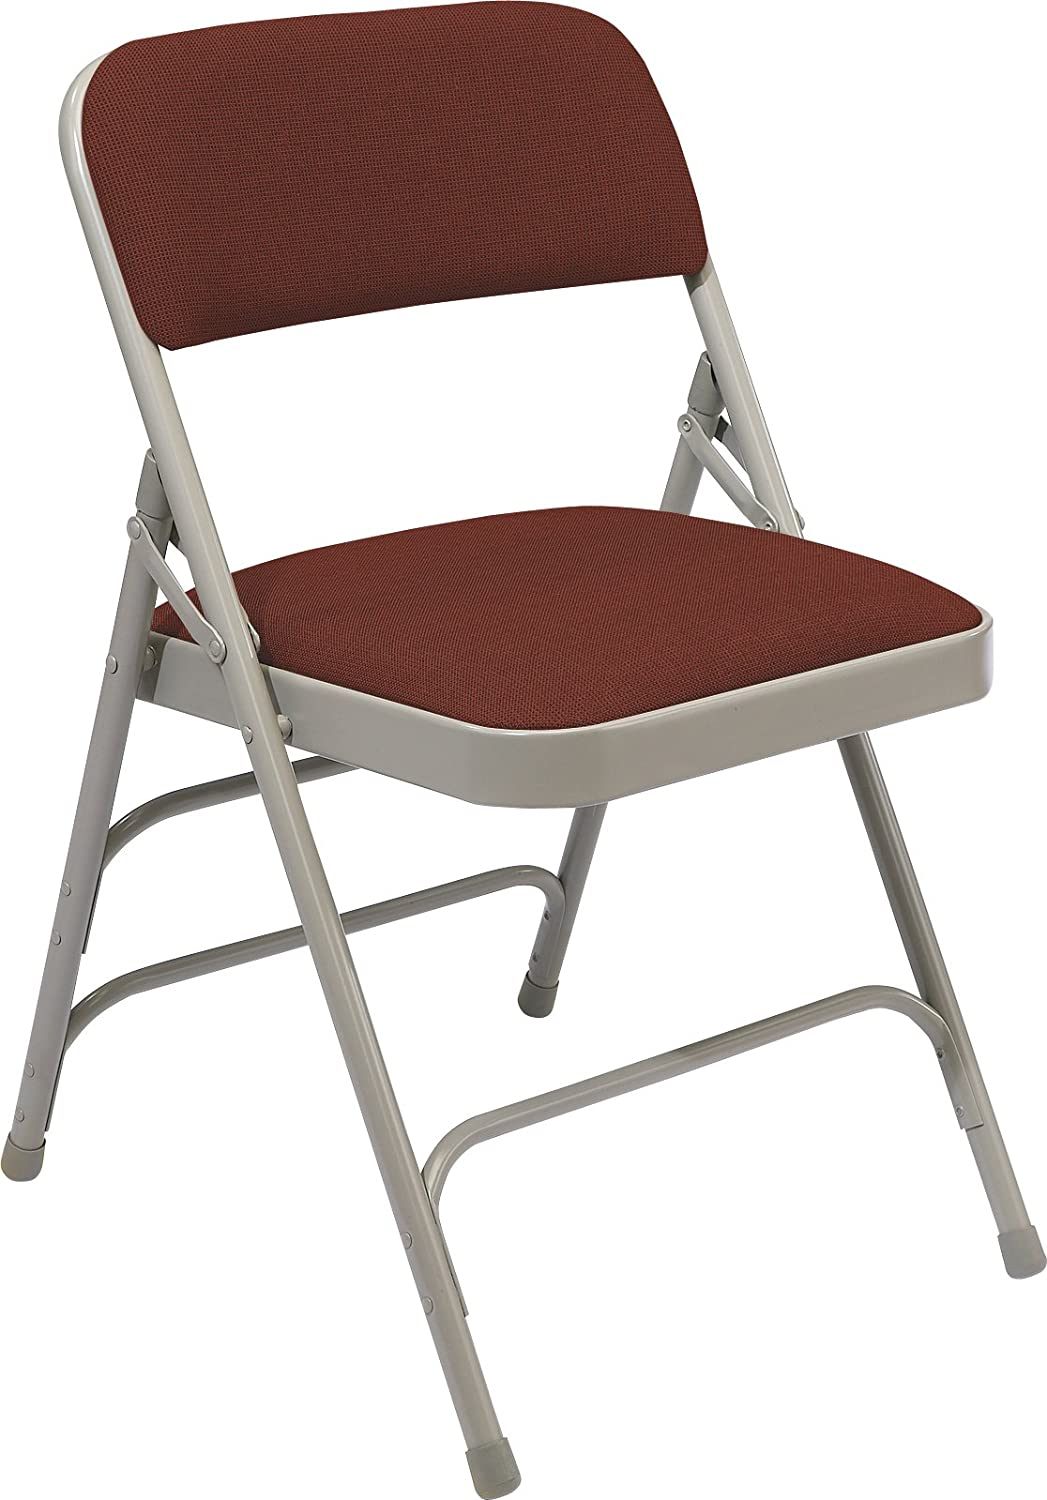 Amazon.com: National Public Seating 2300 Series Steel Frame Upholstered  Premium Fabric Seat And Back Folding Chair With Triple Brace, 480 Lbs  Capacity, ...